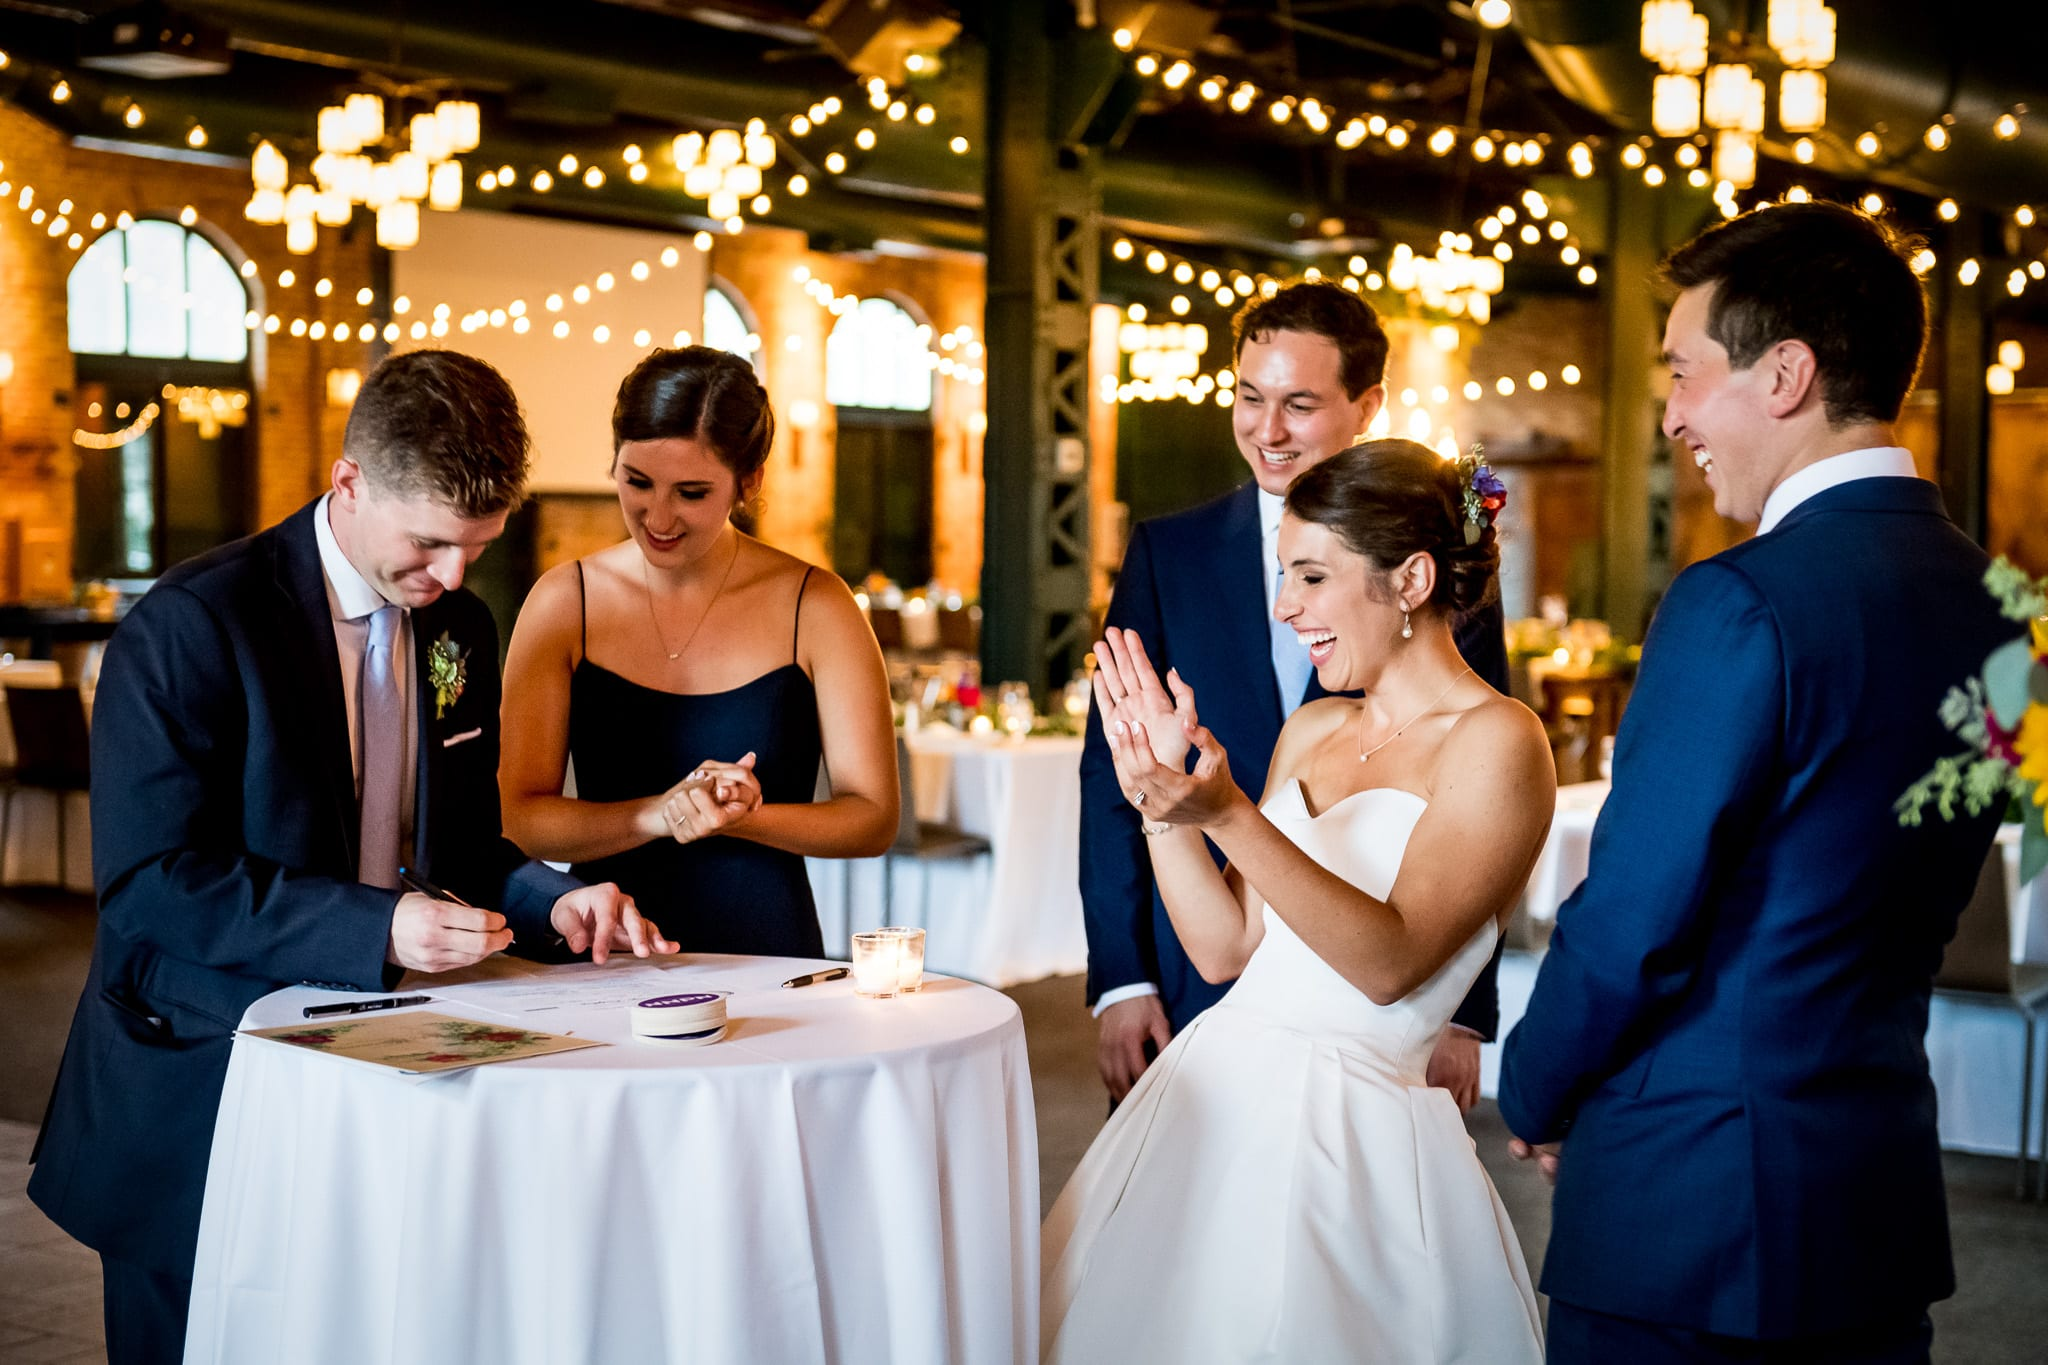 Bride laughs hysterically as her sister filled out the wrong section on their wedding license